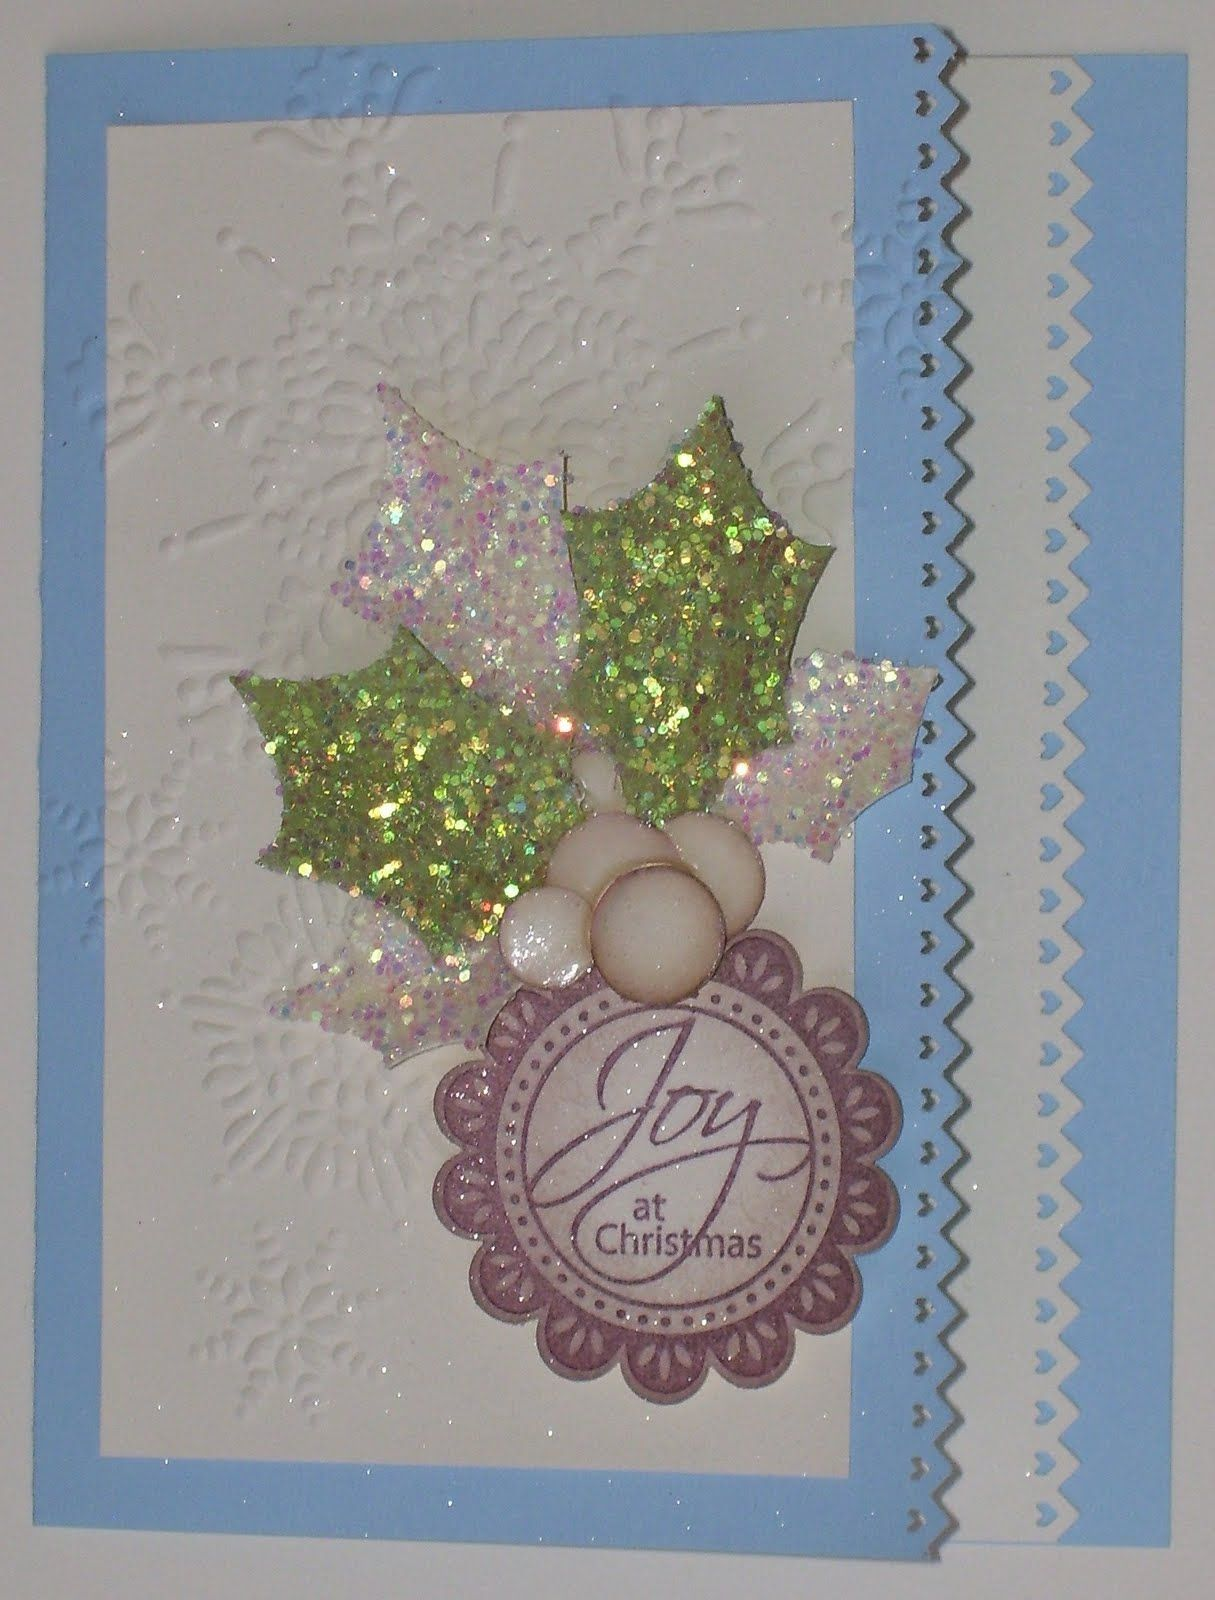 stampin up and sizzix christmas card | Craft Ideas | Pinterest ...